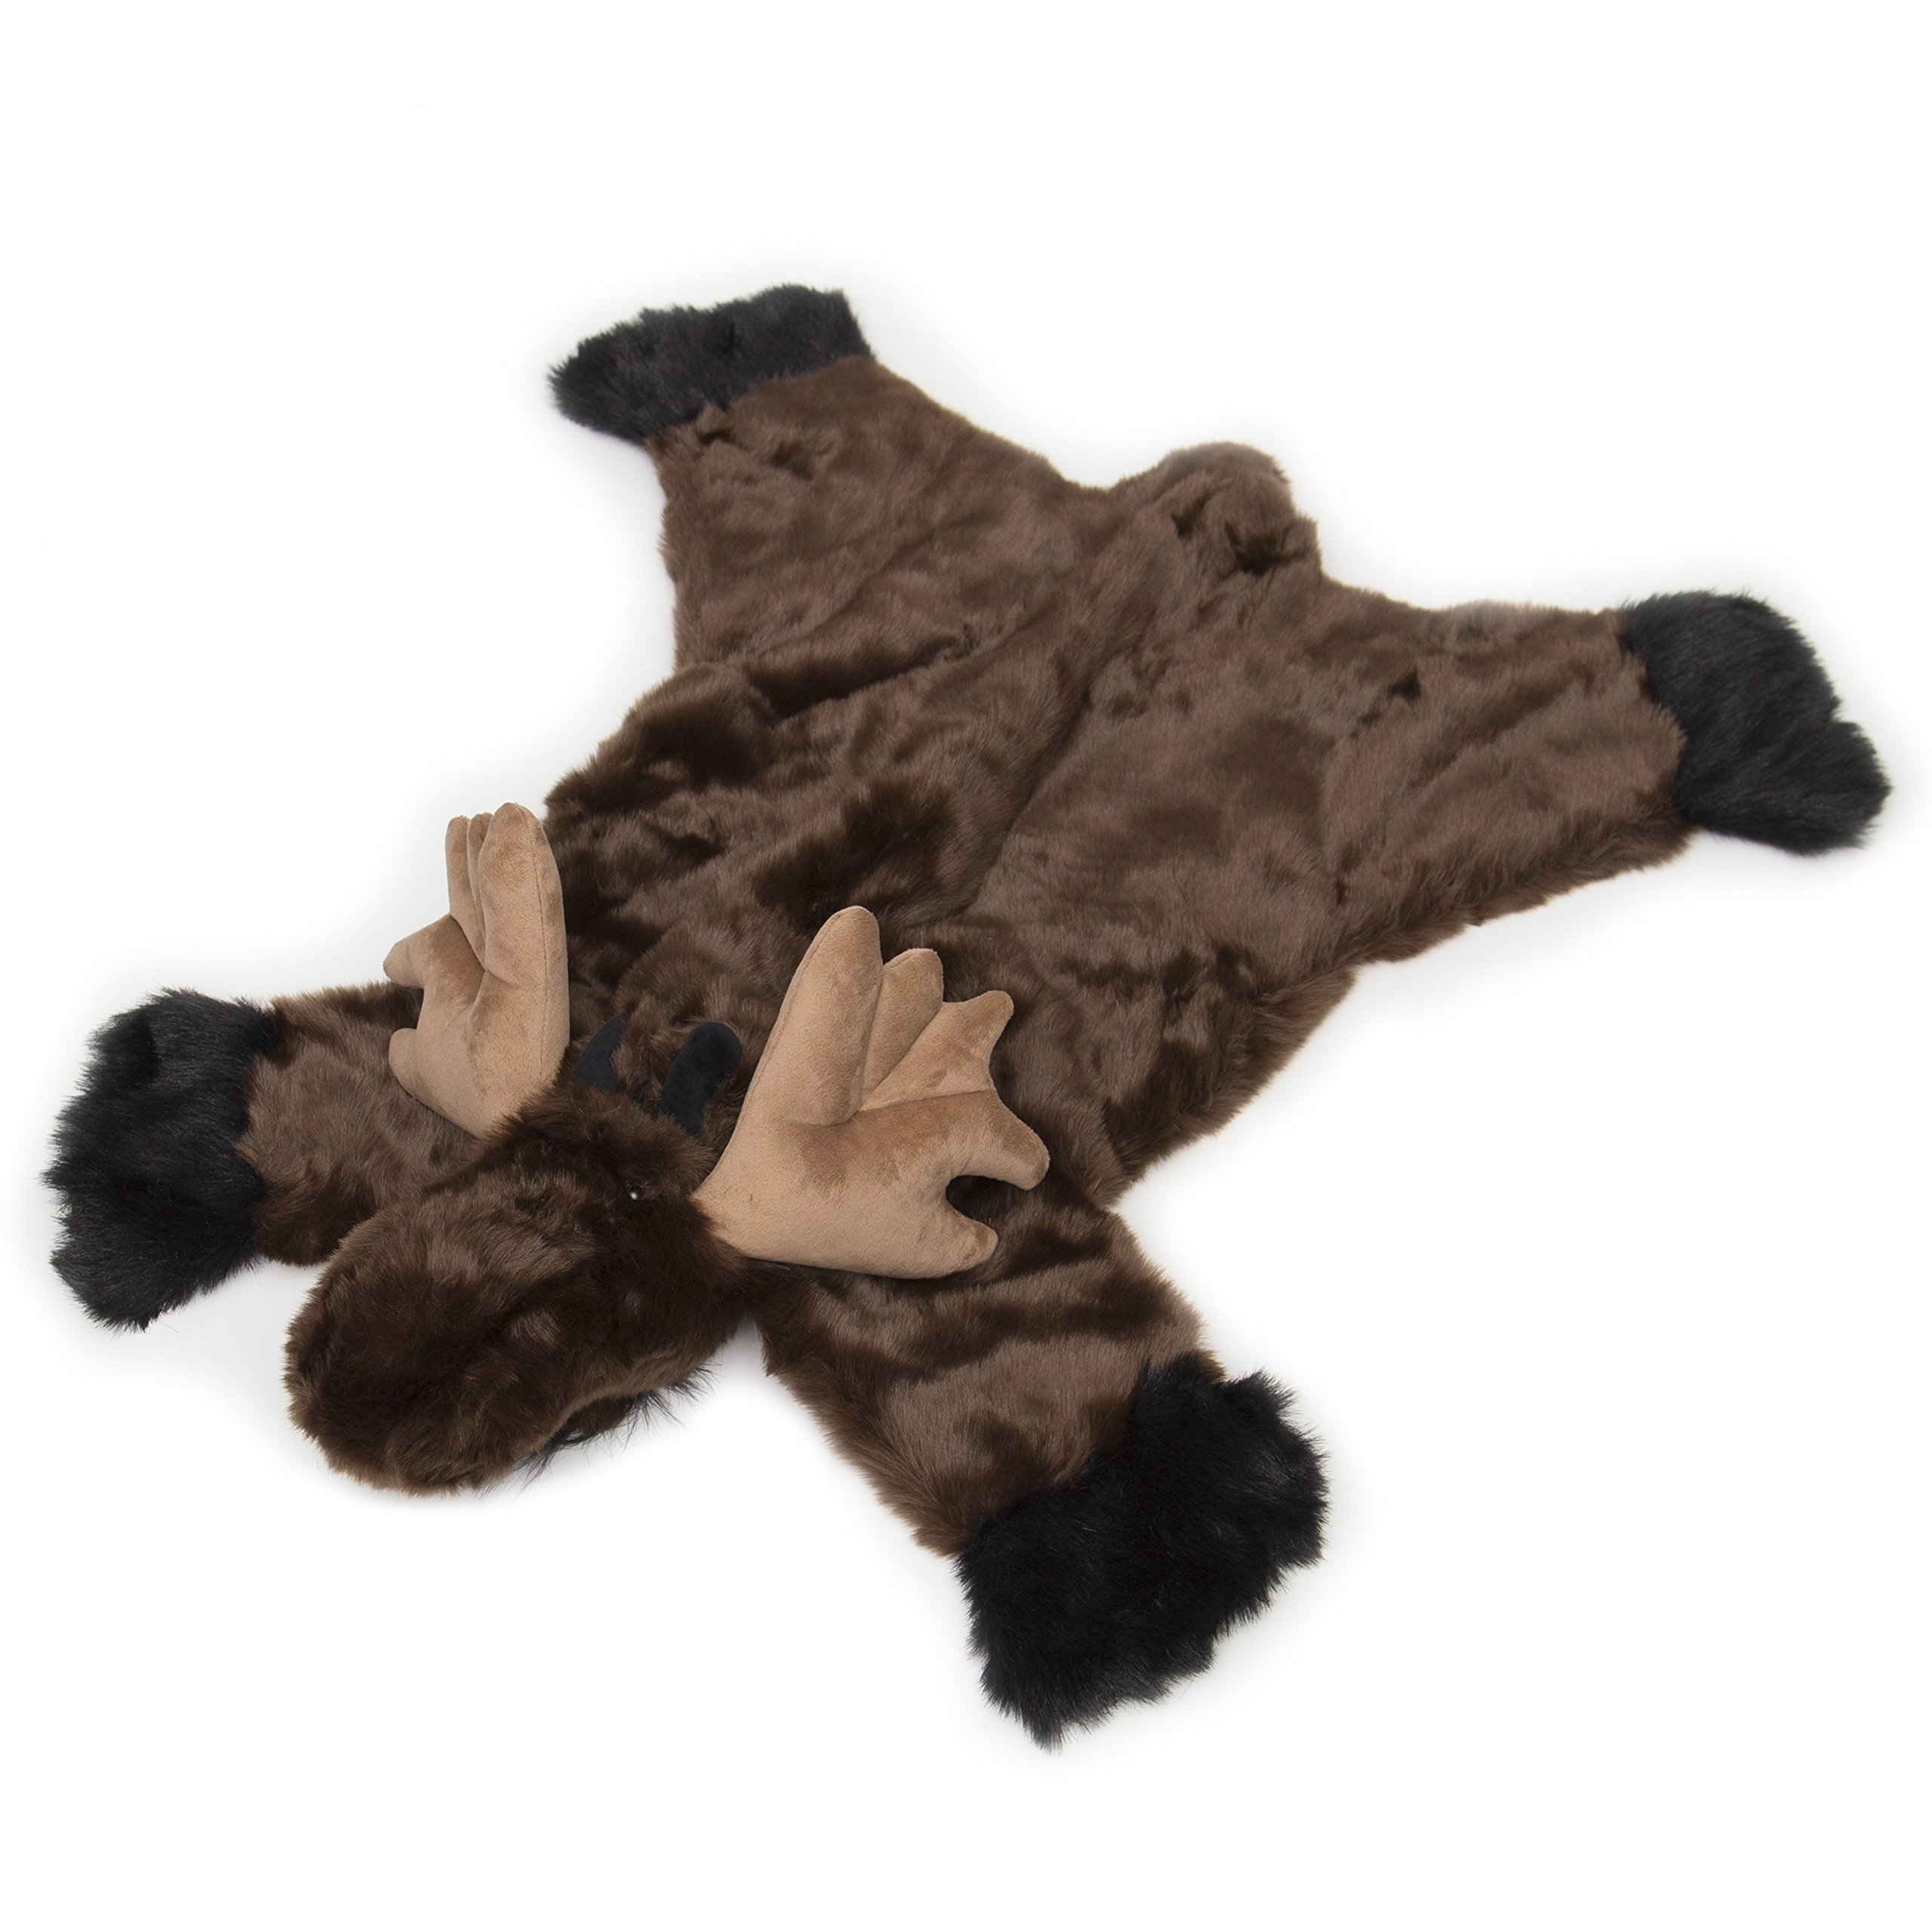 Carstens Plush Moose Animal Rug Small